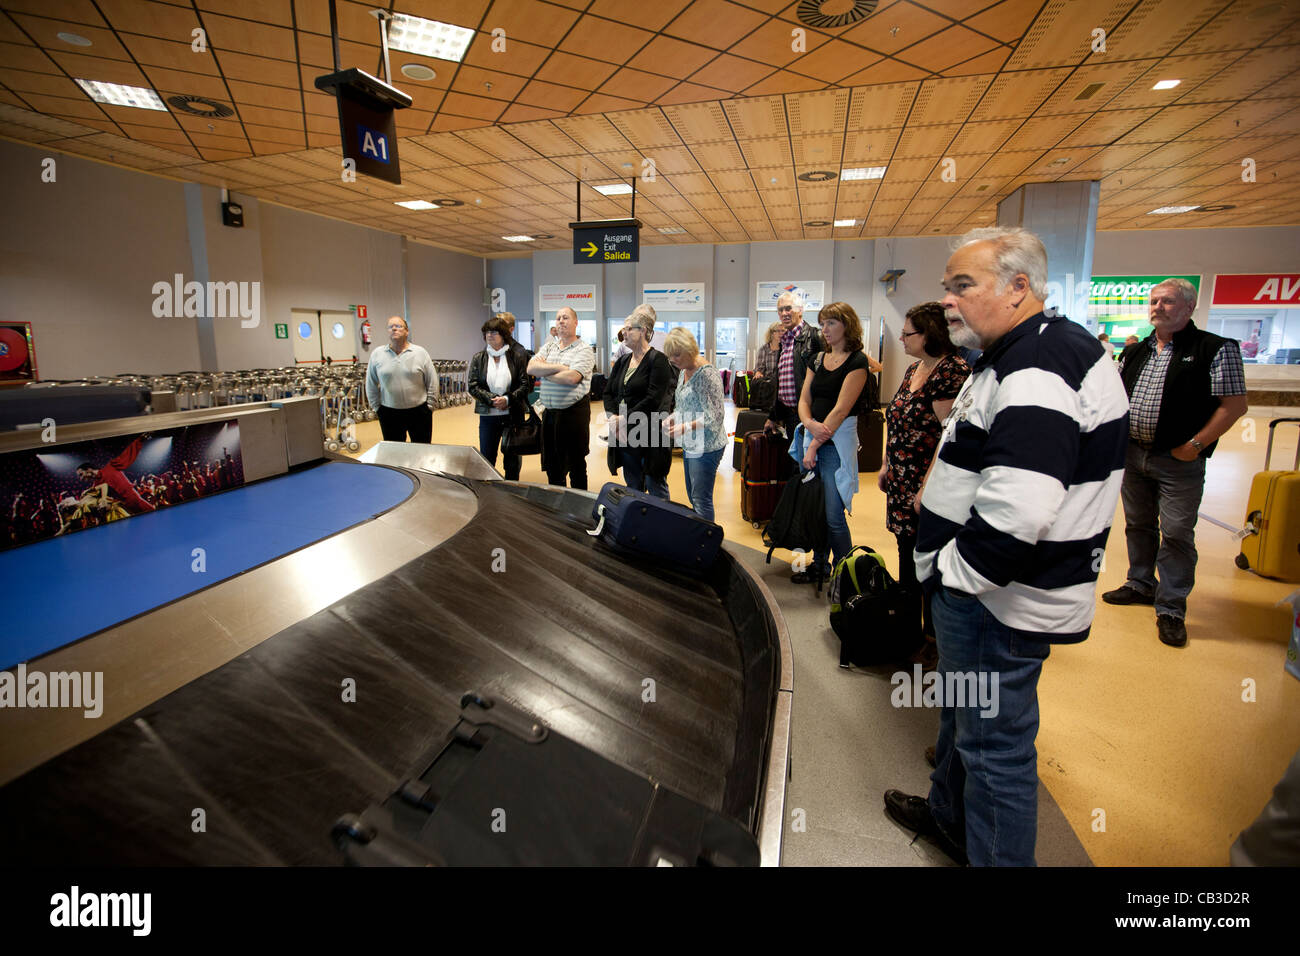 Tourists waiting for their luggage, Tenerife, Canary Islands, Spain. - Stock Image